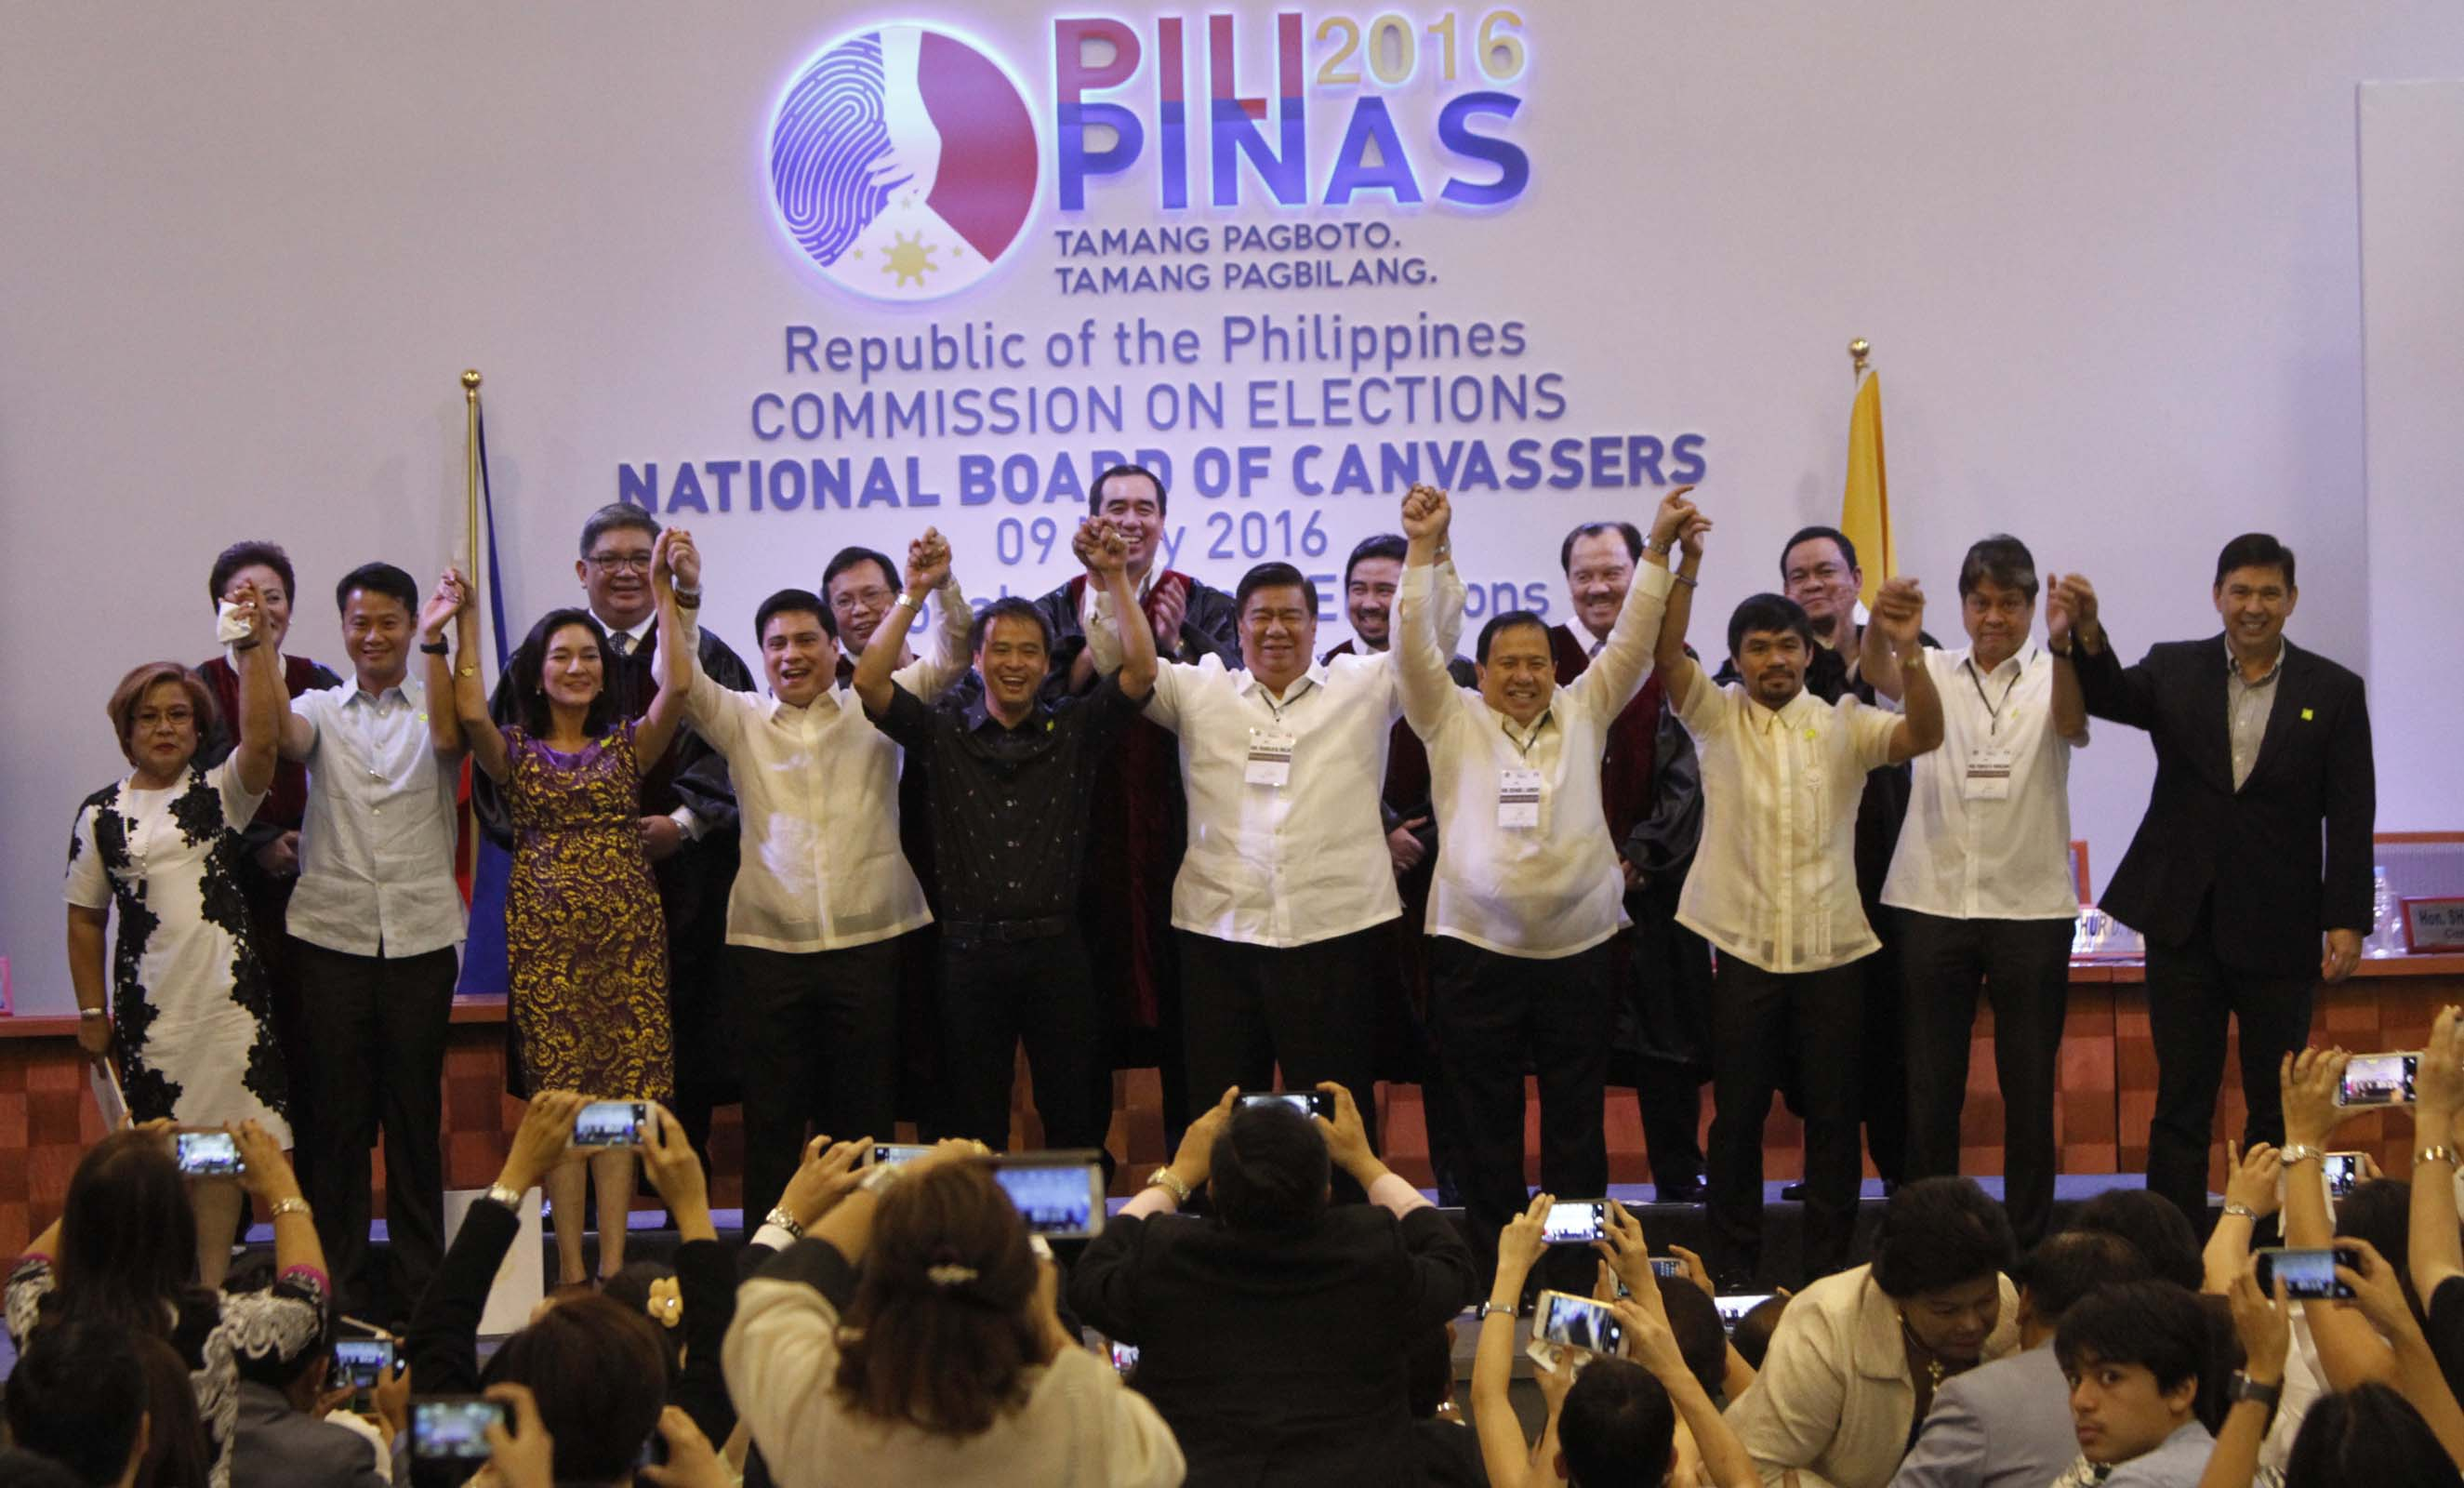 (From left) Newly elected Senators Leila de Lima, Sherwin Gatchalian, Risa Hontiveros, Migz Zubiri, Joel Villanueva, Franklin Drilon, Richard Gordon, Manny Pacquiao, Francis Pangilinan and Ralph Recto. Senators Tito Sotto and Panfilo Lacson are not in the photo. Also shown in the photo are: Commission on Elections (Comelec) officials headed by Chairman Andres Bautista during the proclamation on Thursday (May 19, 2016) at the PICC in Pasay City. (PNA photo by Avito C. Dalan)